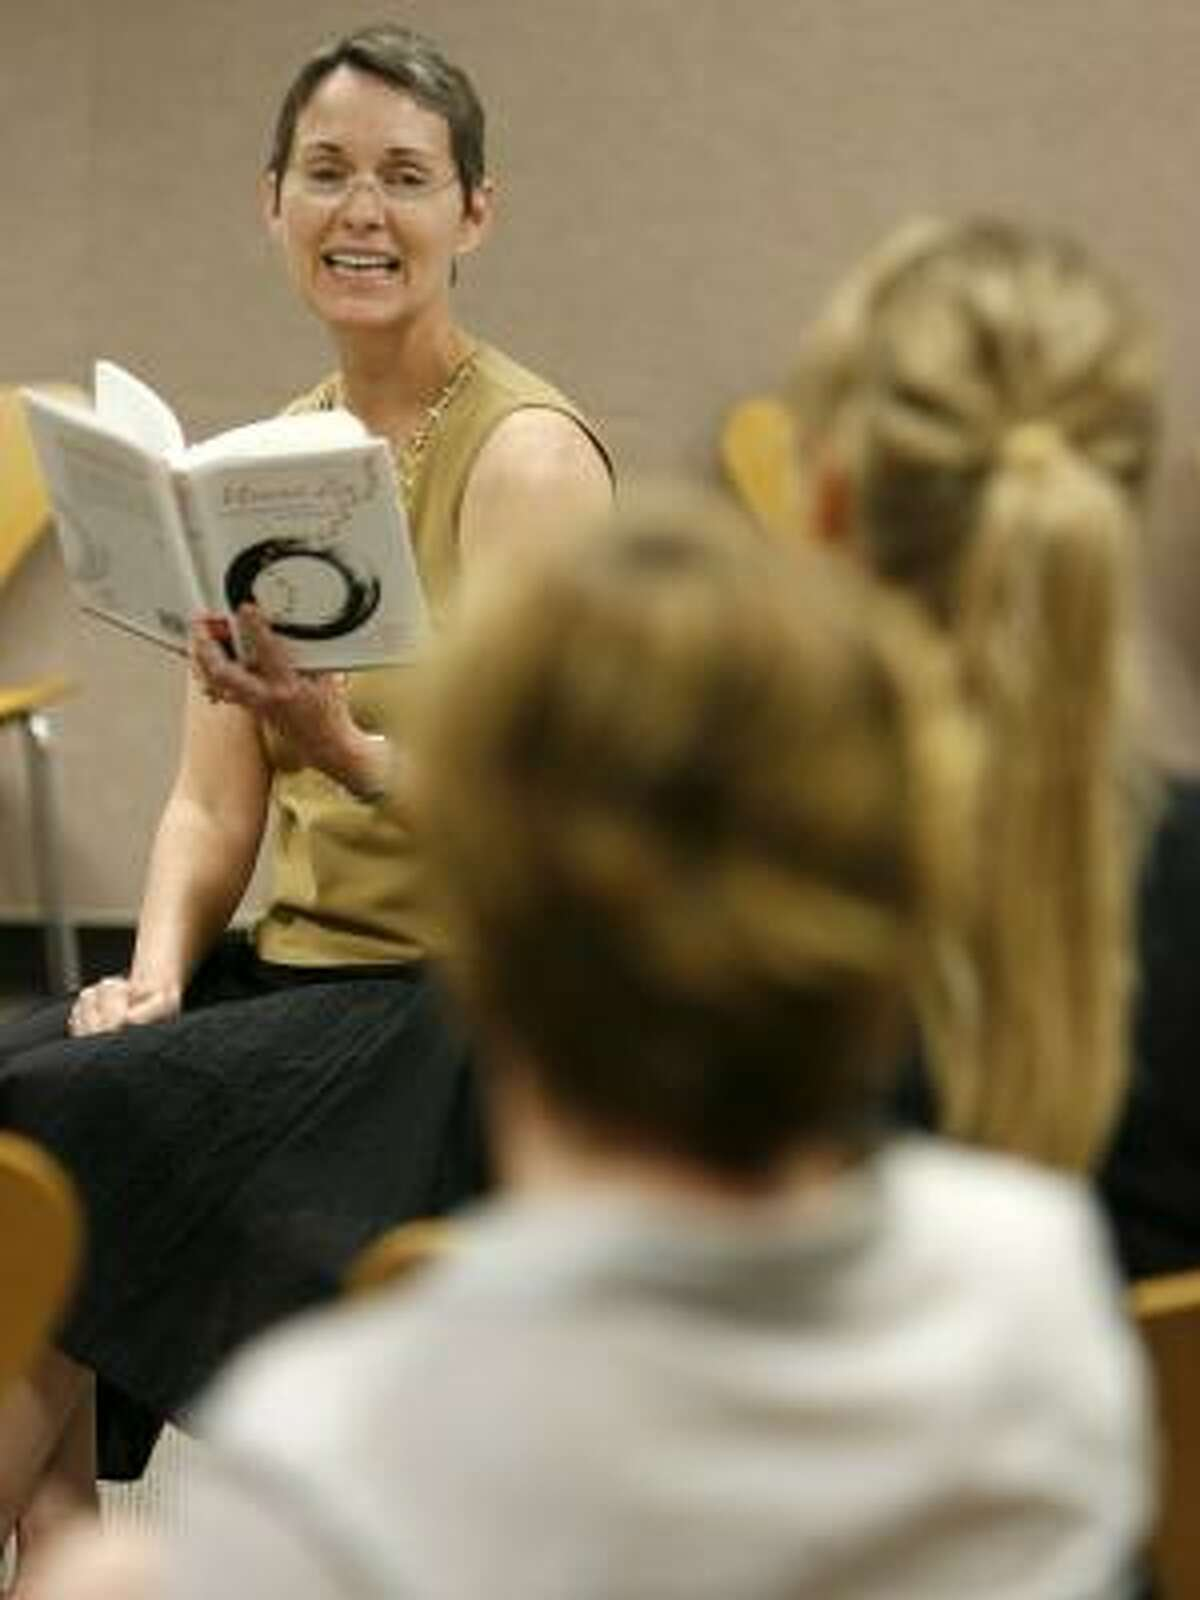 Karen Miller reads from her book during an appearance at the Heights Library.